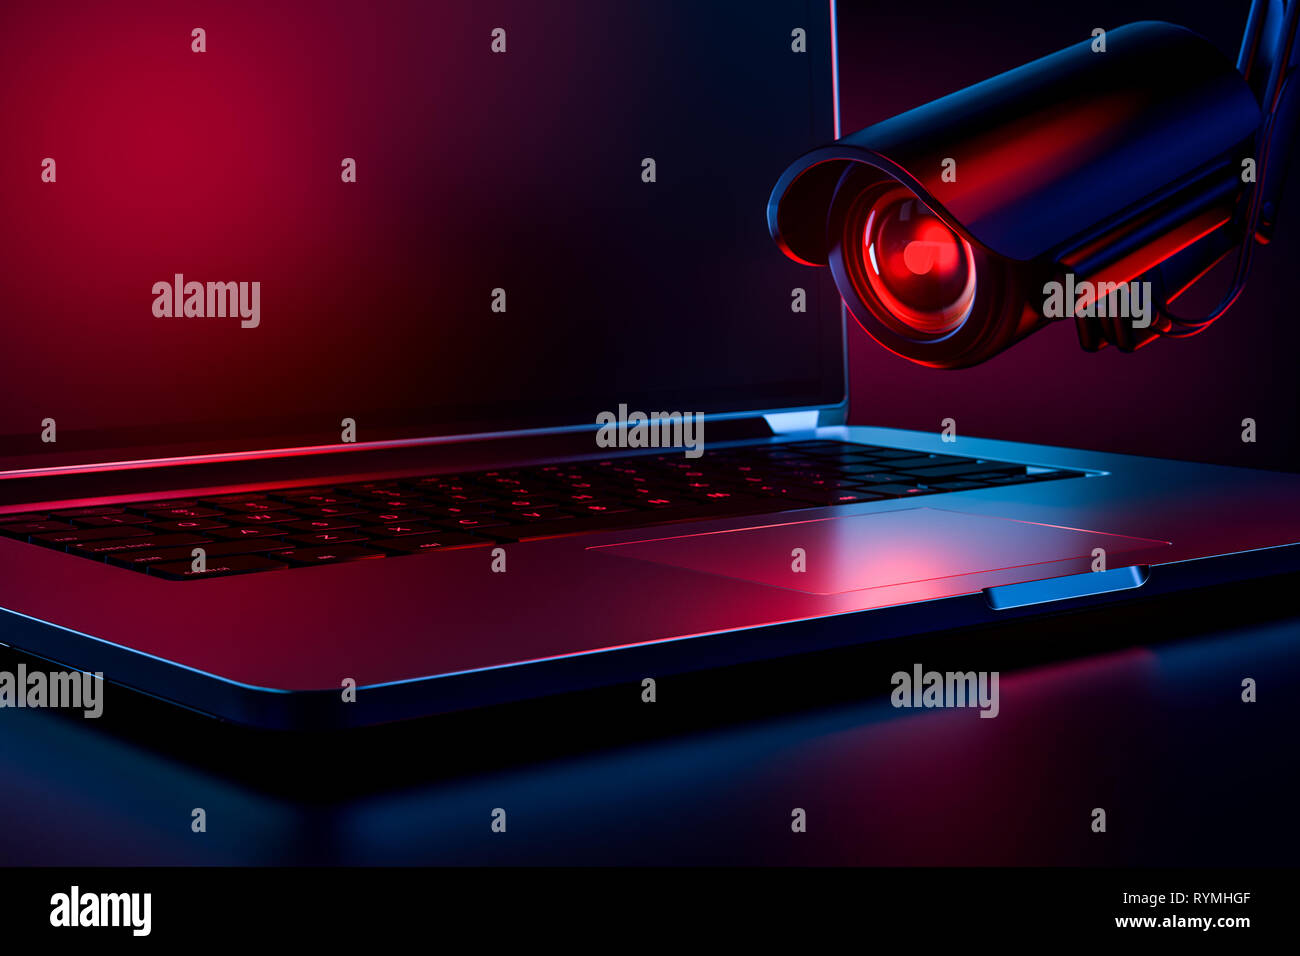 Computer observed by hostile looking camera as a metaphor of stalking or malicious software observing and tracking user. Copy space on the screen prov - Stock Image